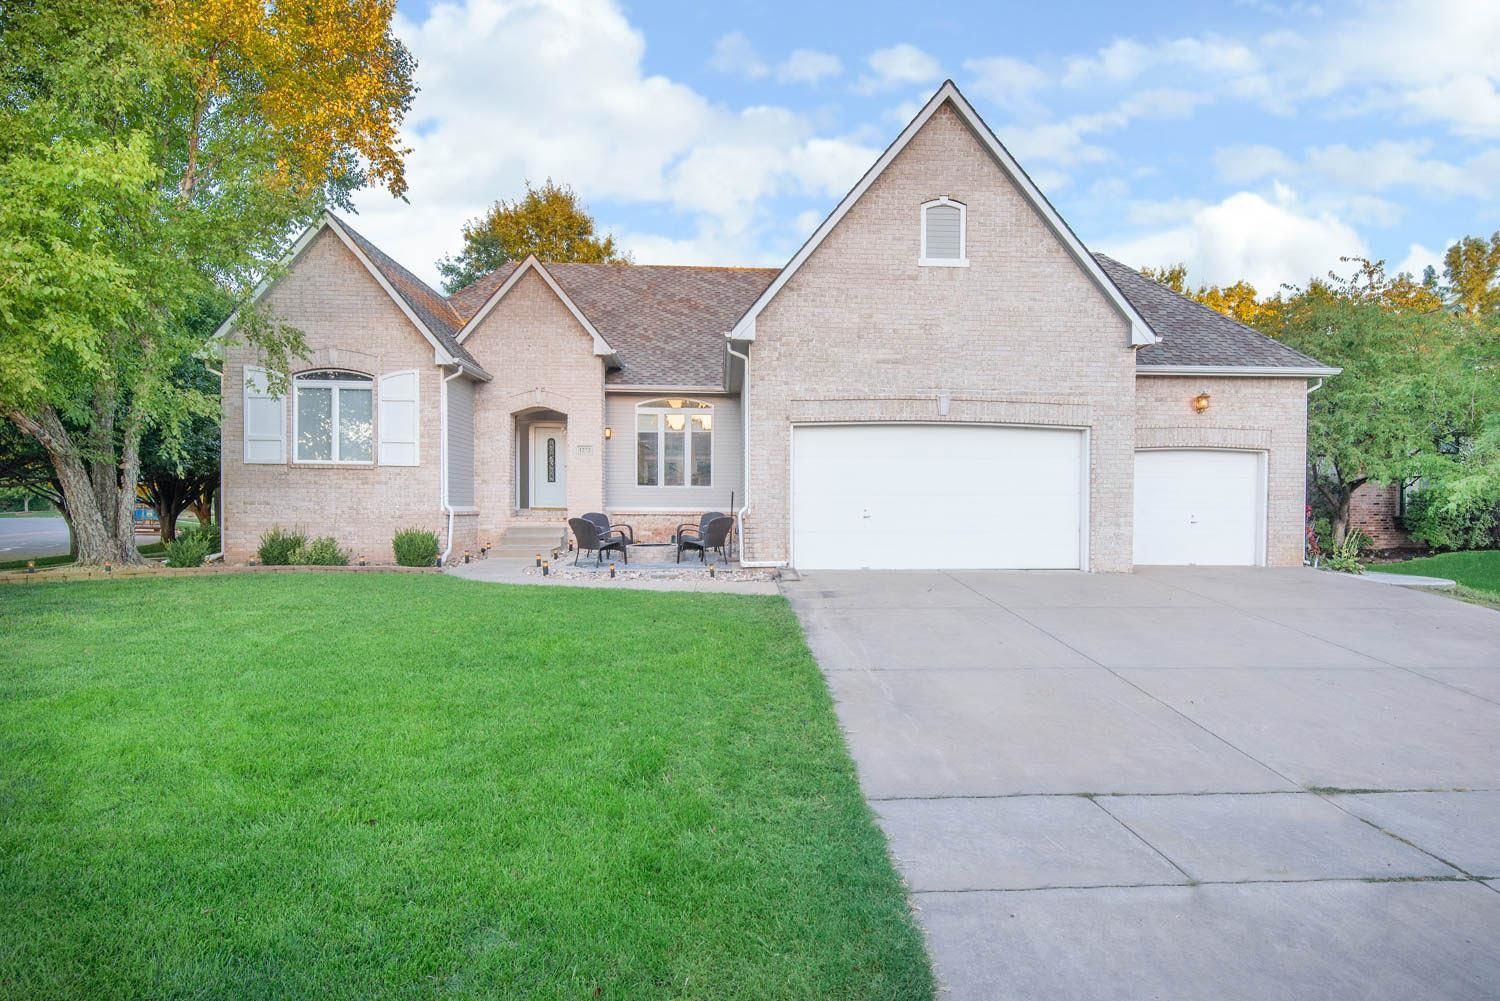 5 BEDROOM RANCH IN THE MAIZE DISTRICT WITH UPGRADES GALORE!  WALK INTO A LARGE LIVING ROOM WITH GREA